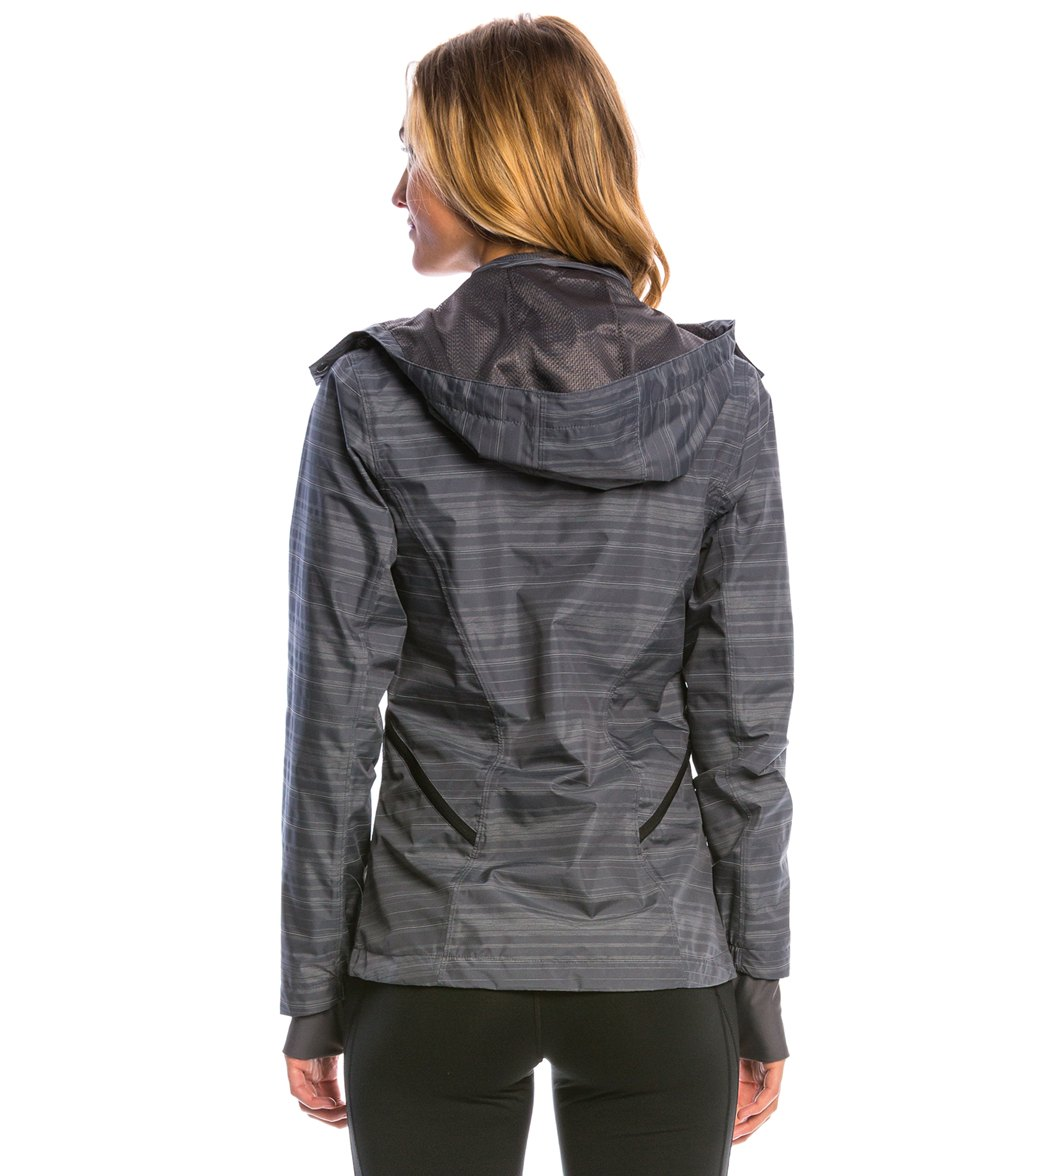 c98f504a00fd Asics Women s Storm Shelter Jacket at SwimOutlet.com - Free Shipping